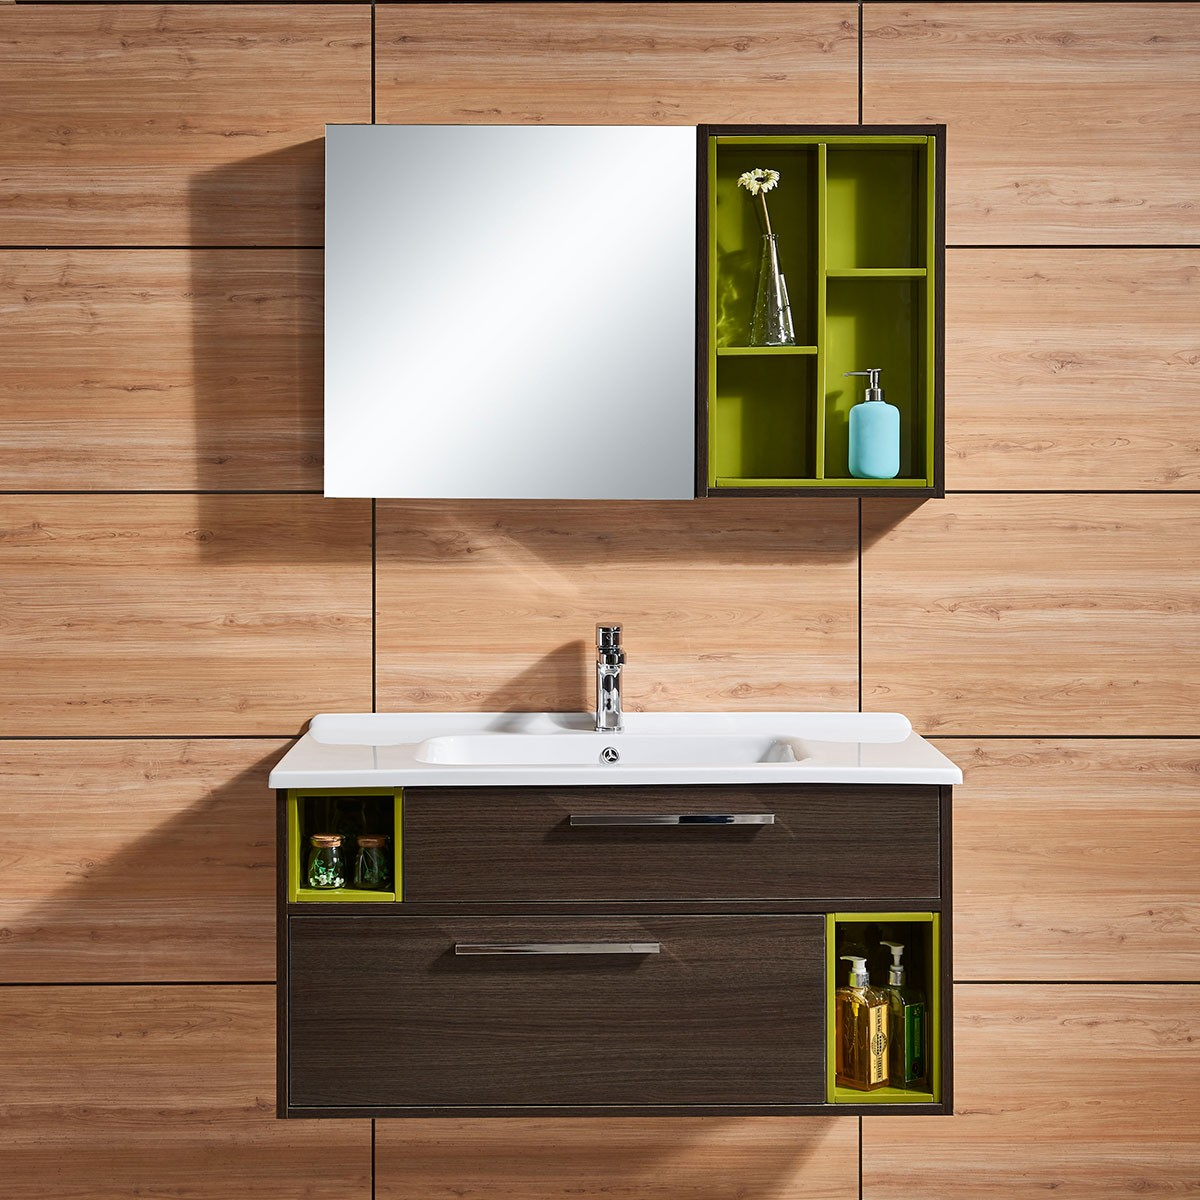 39 In. Wall Mount Bathroom Vanity Set With Mirror And Side Cabinet (DK